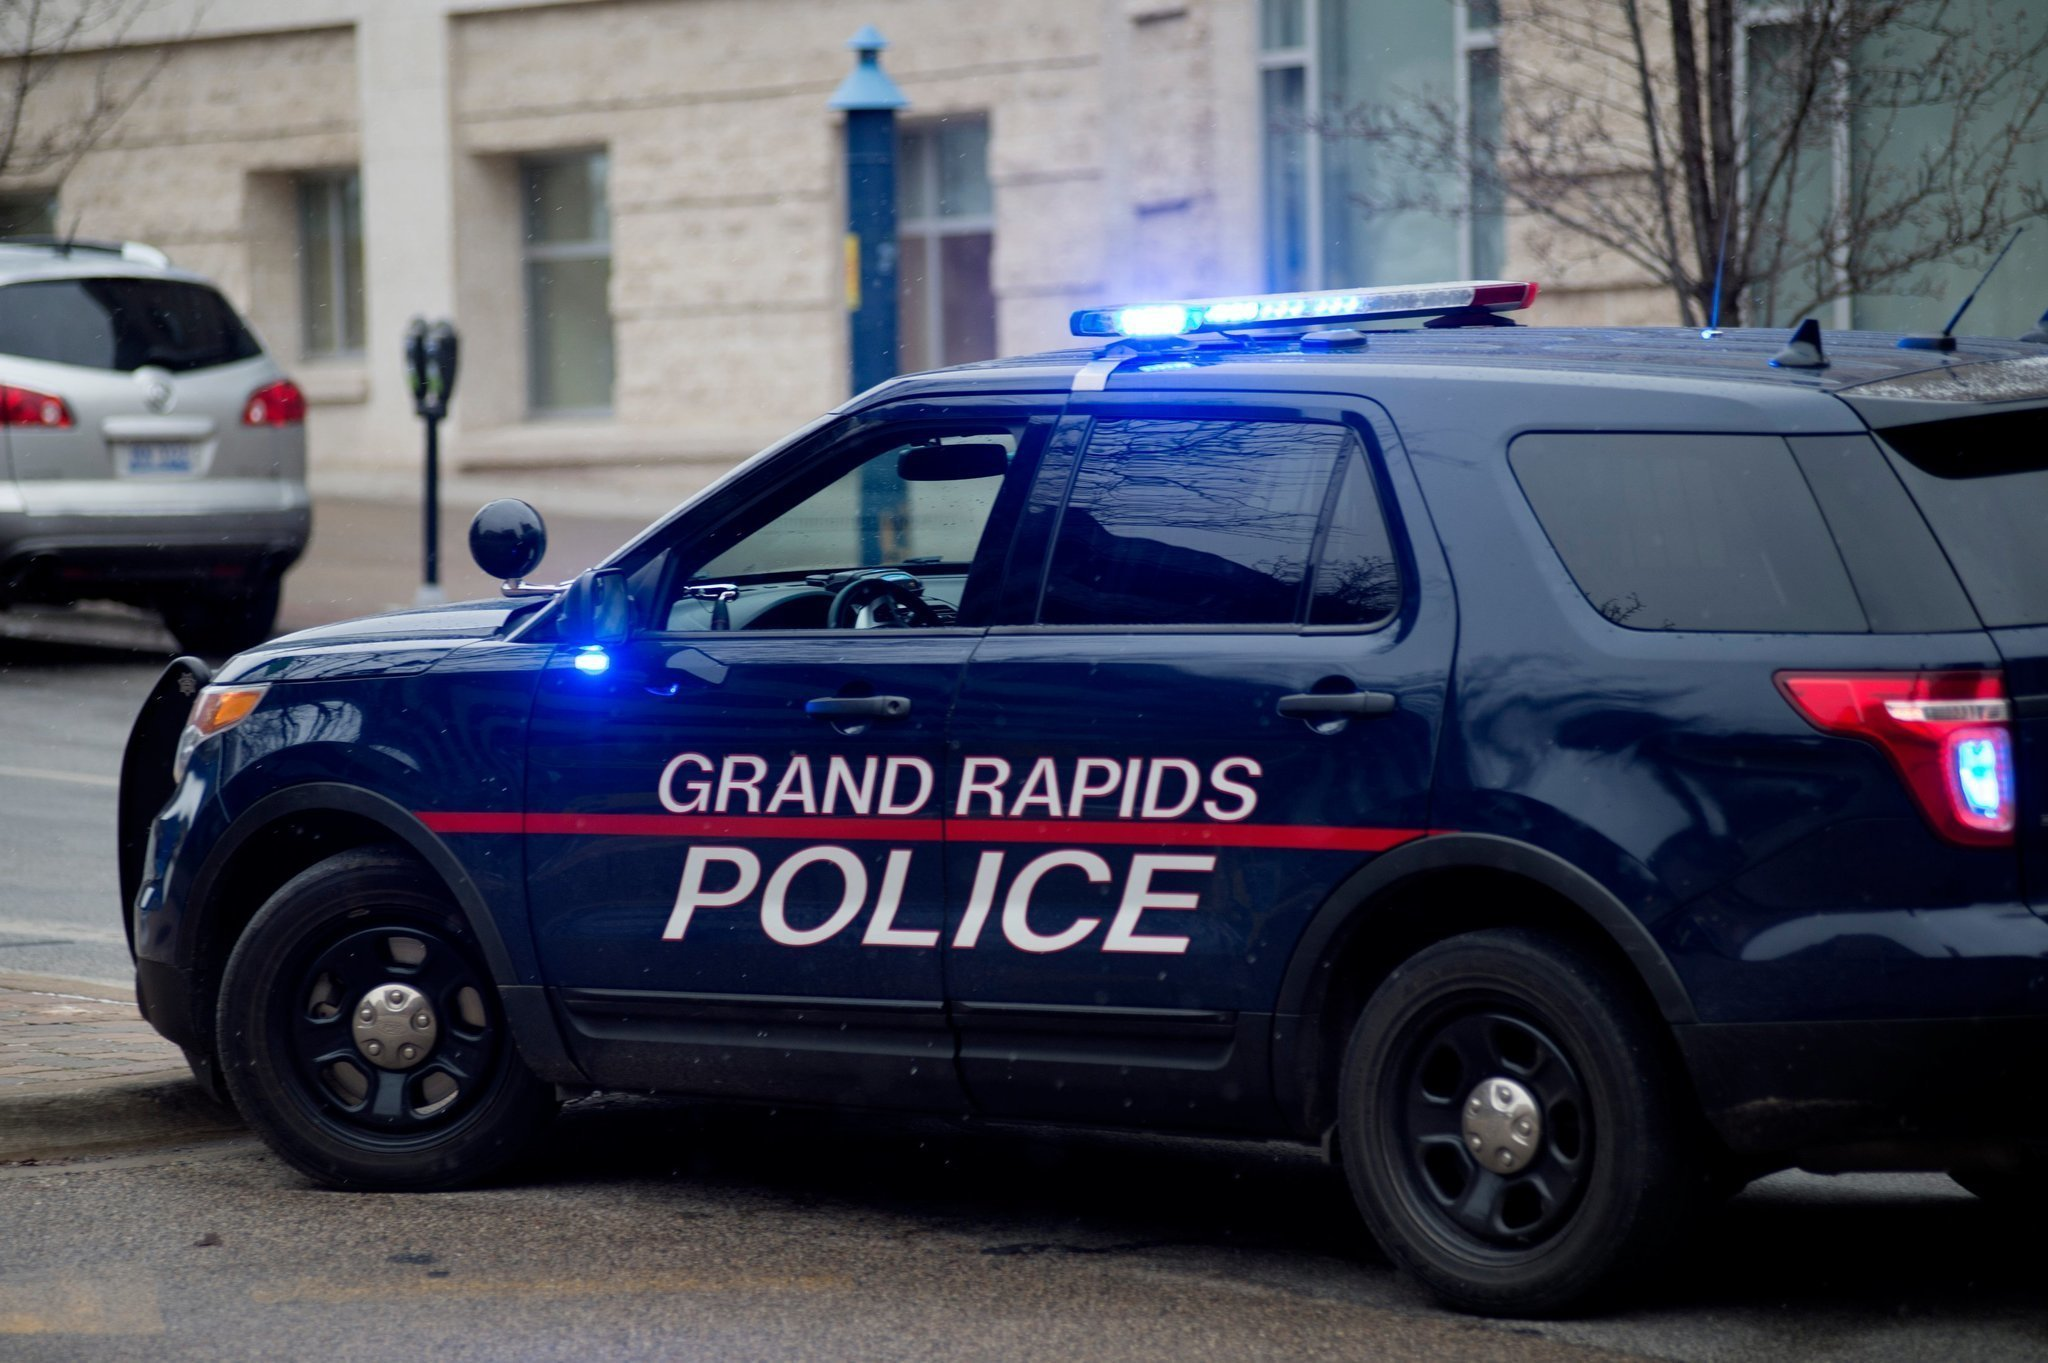 Grand Rapids woman shot in arm, police say